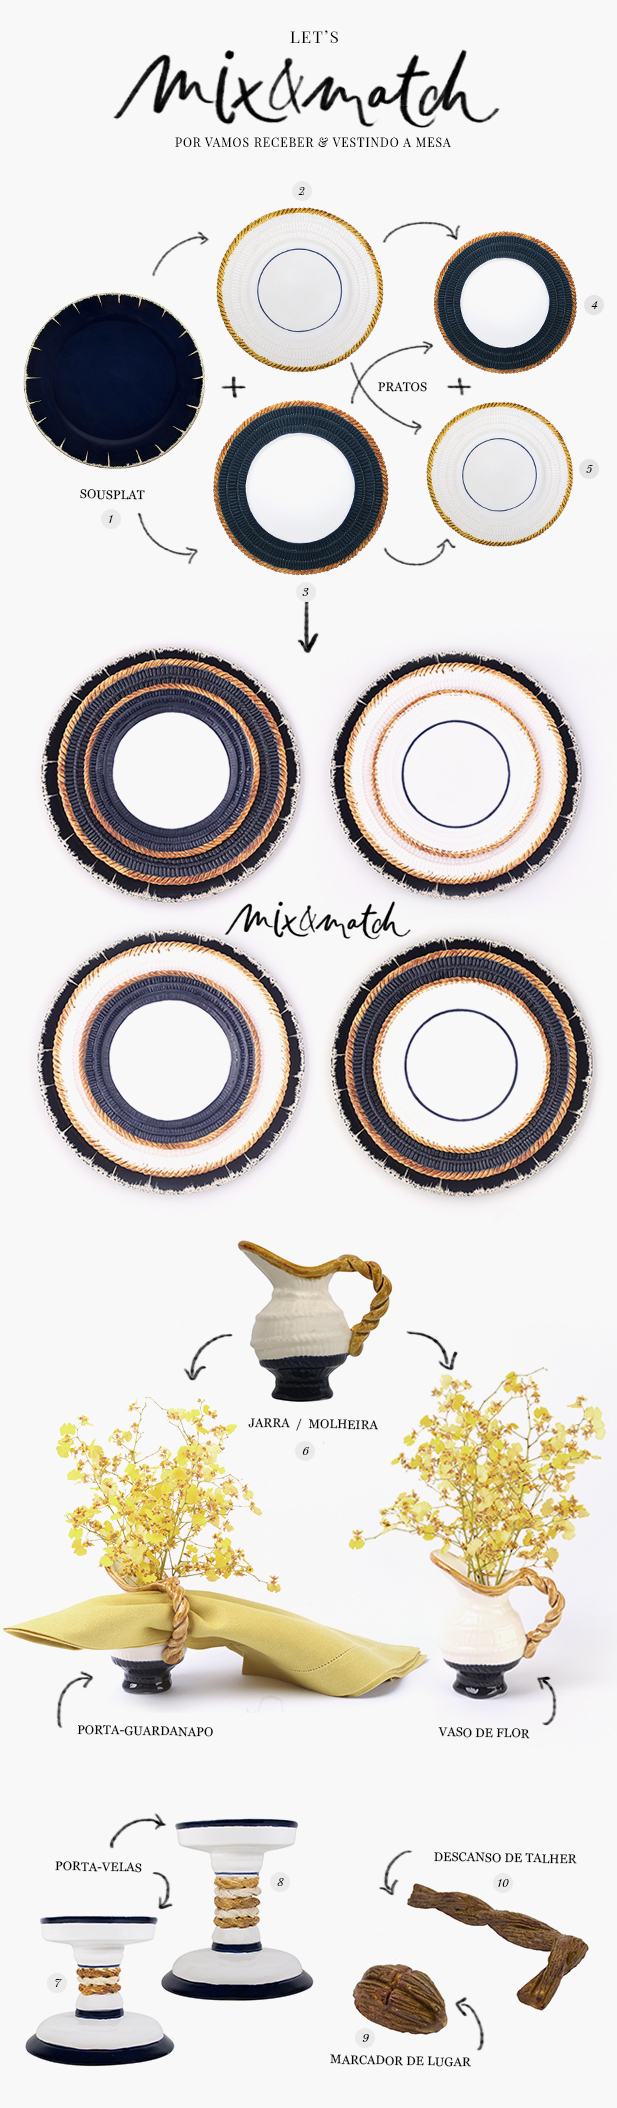 mix & match1 - vestindo a mesa